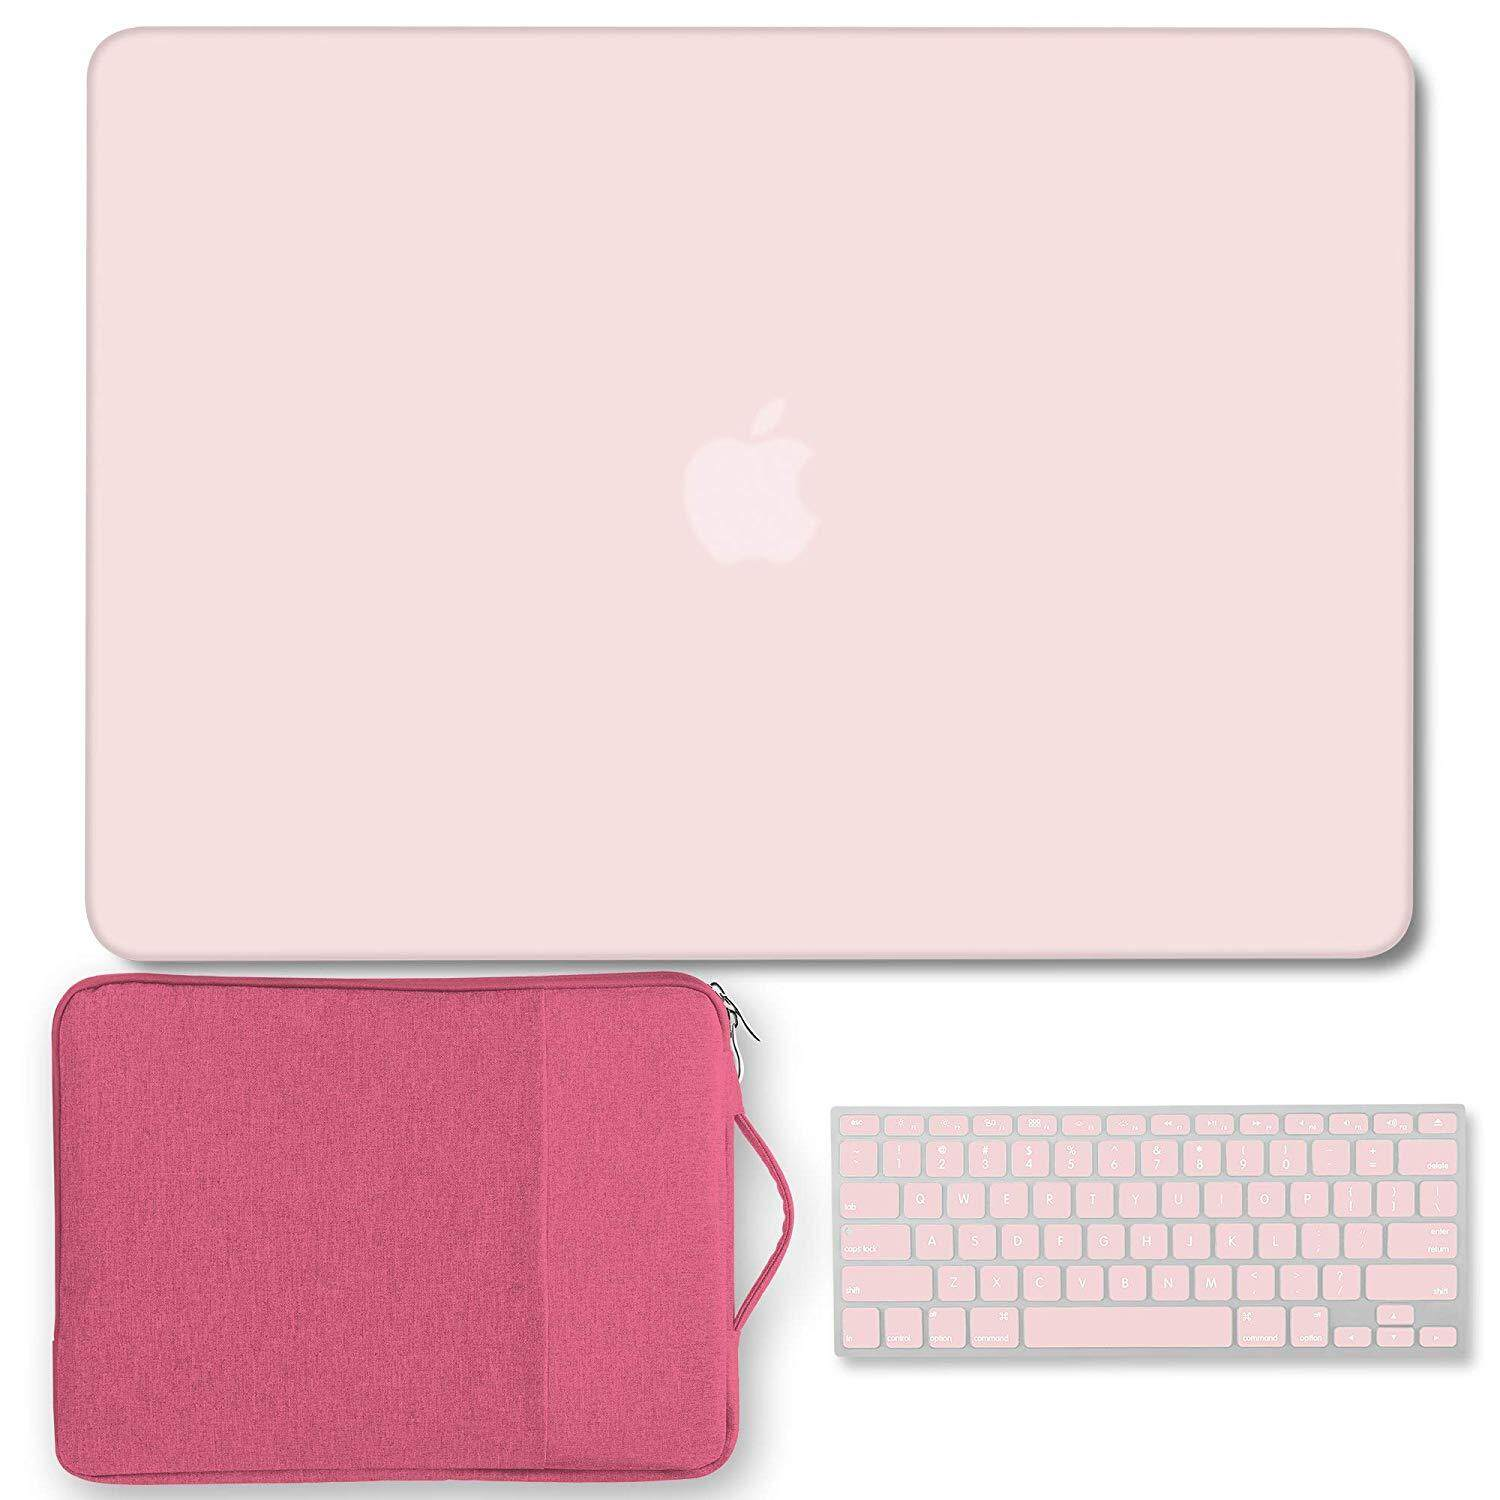 a3999e6cf91 Mac Accessories for sale - Apple Computer Accessories prices, brands &  specs in Philippines | Lazada.com.ph